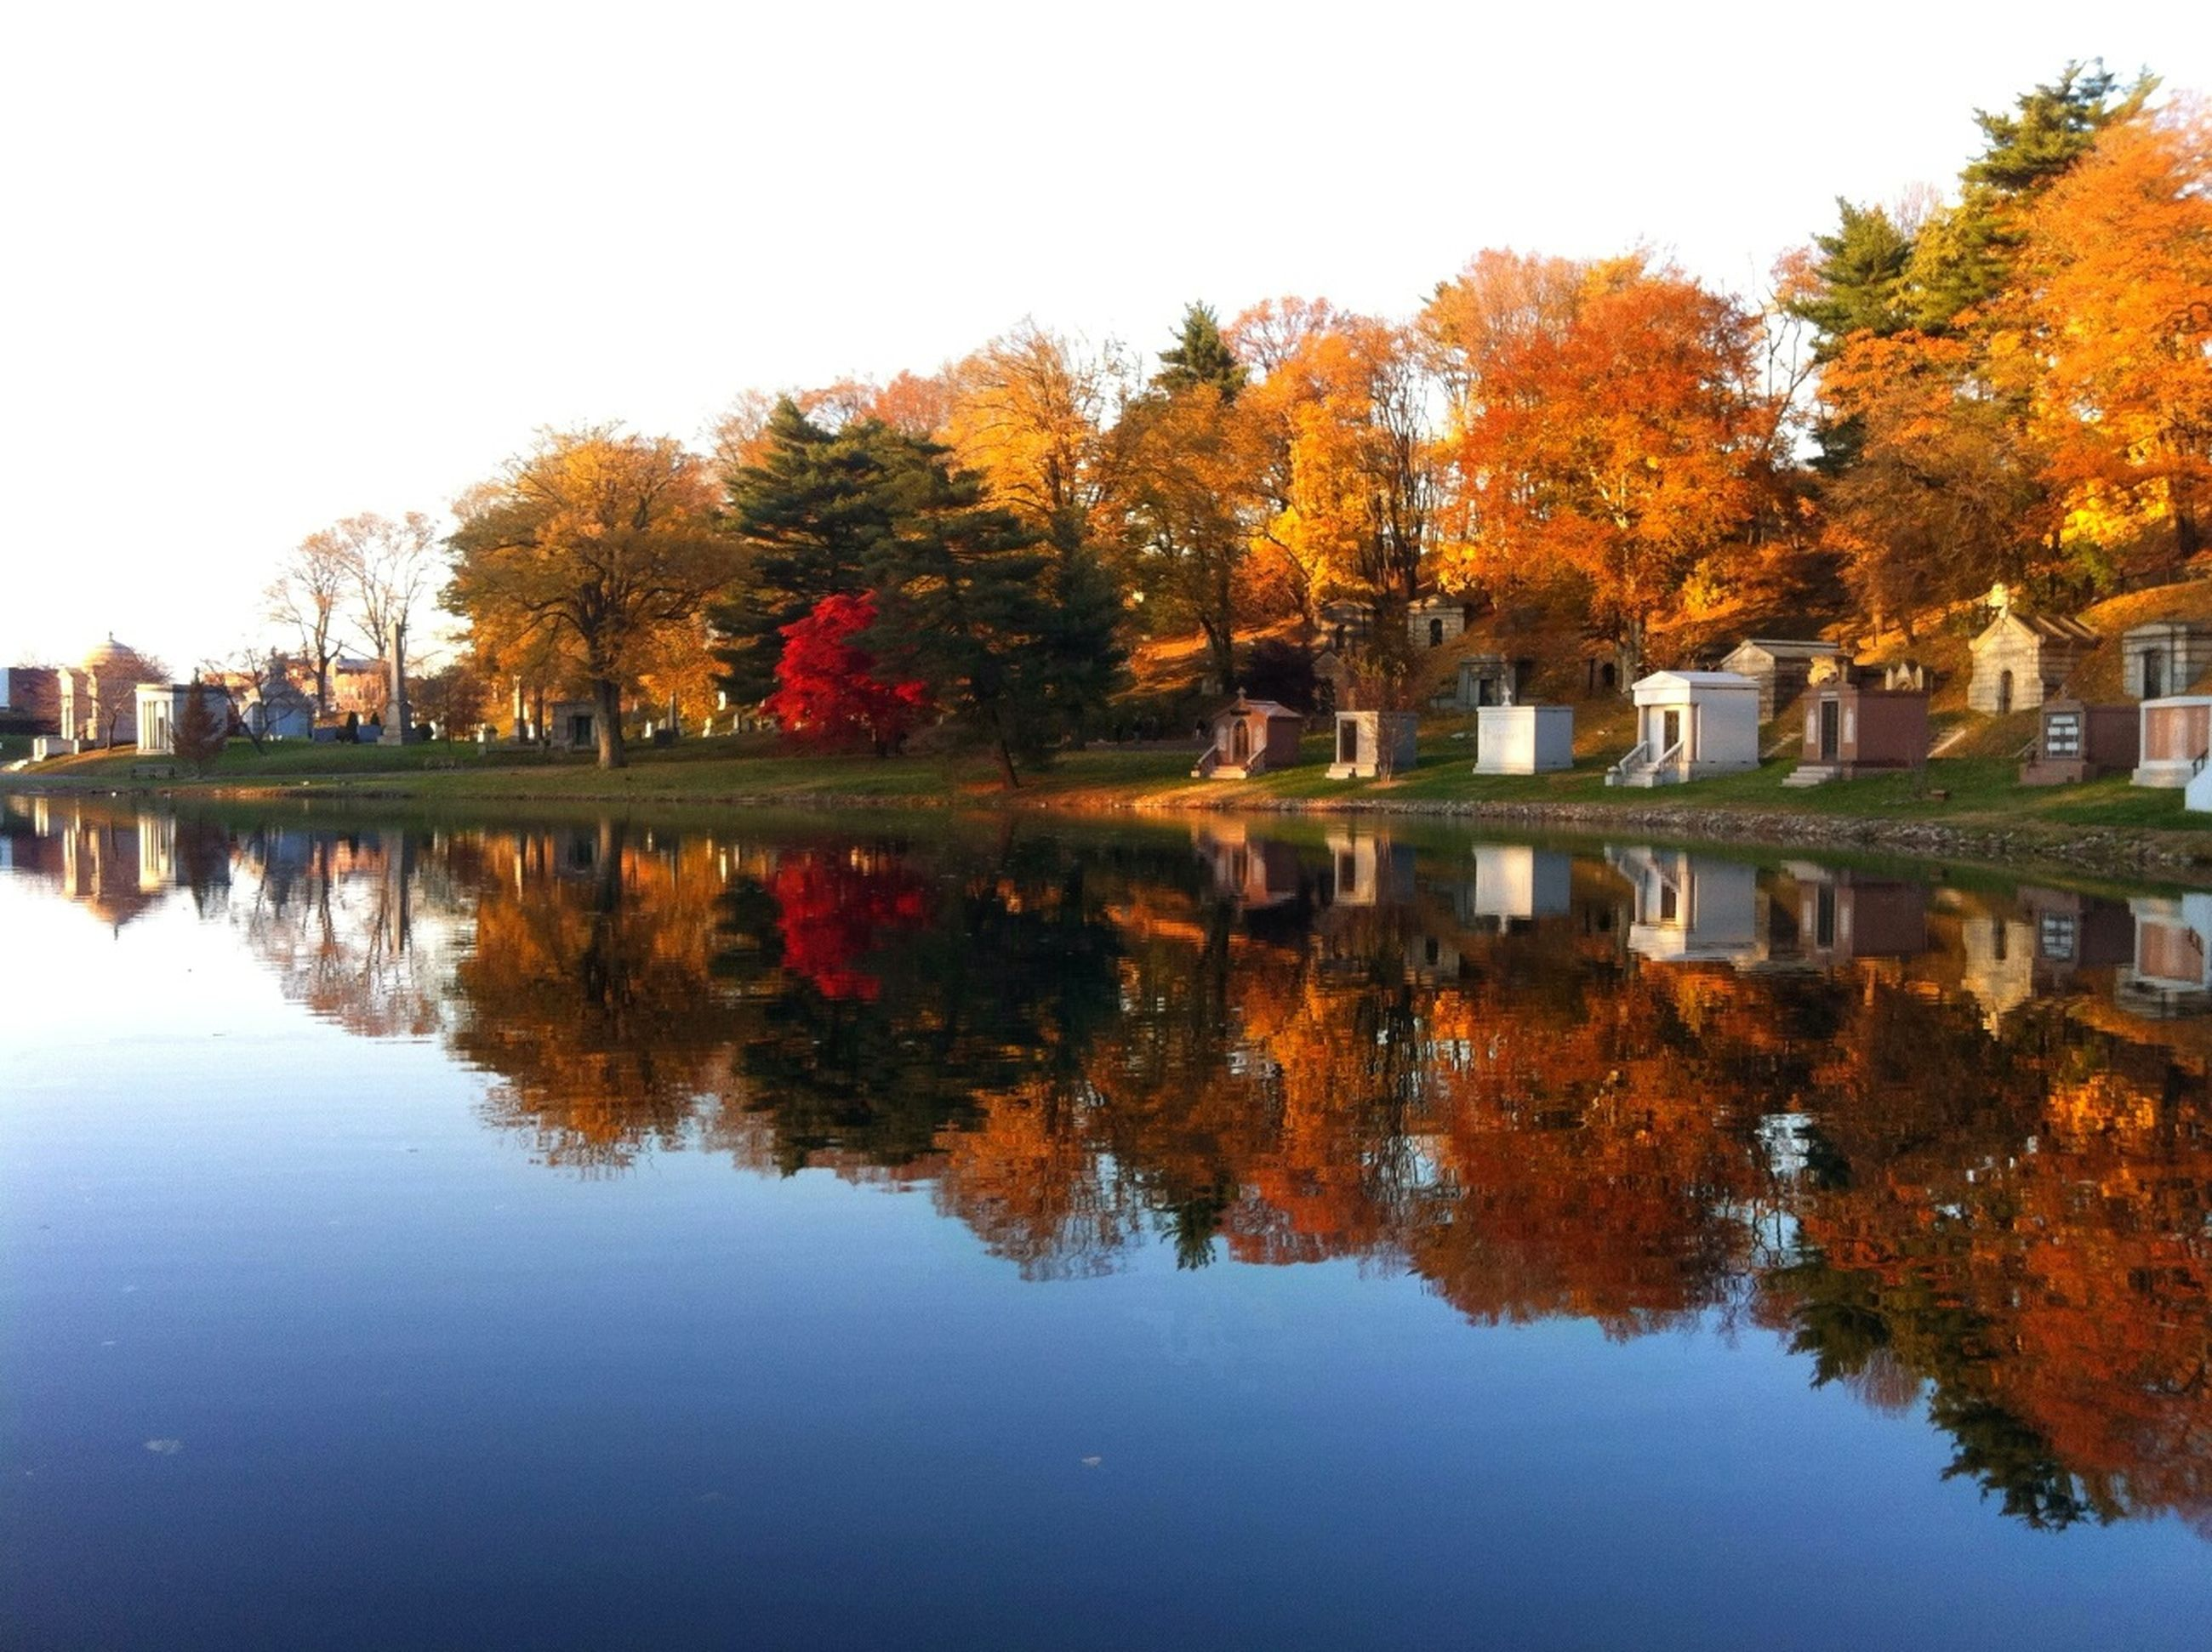 autumn, tree, change, water, reflection, lake, season, waterfront, clear sky, tranquility, beauty in nature, tranquil scene, nature, orange color, scenics, built structure, building exterior, growth, standing water, river